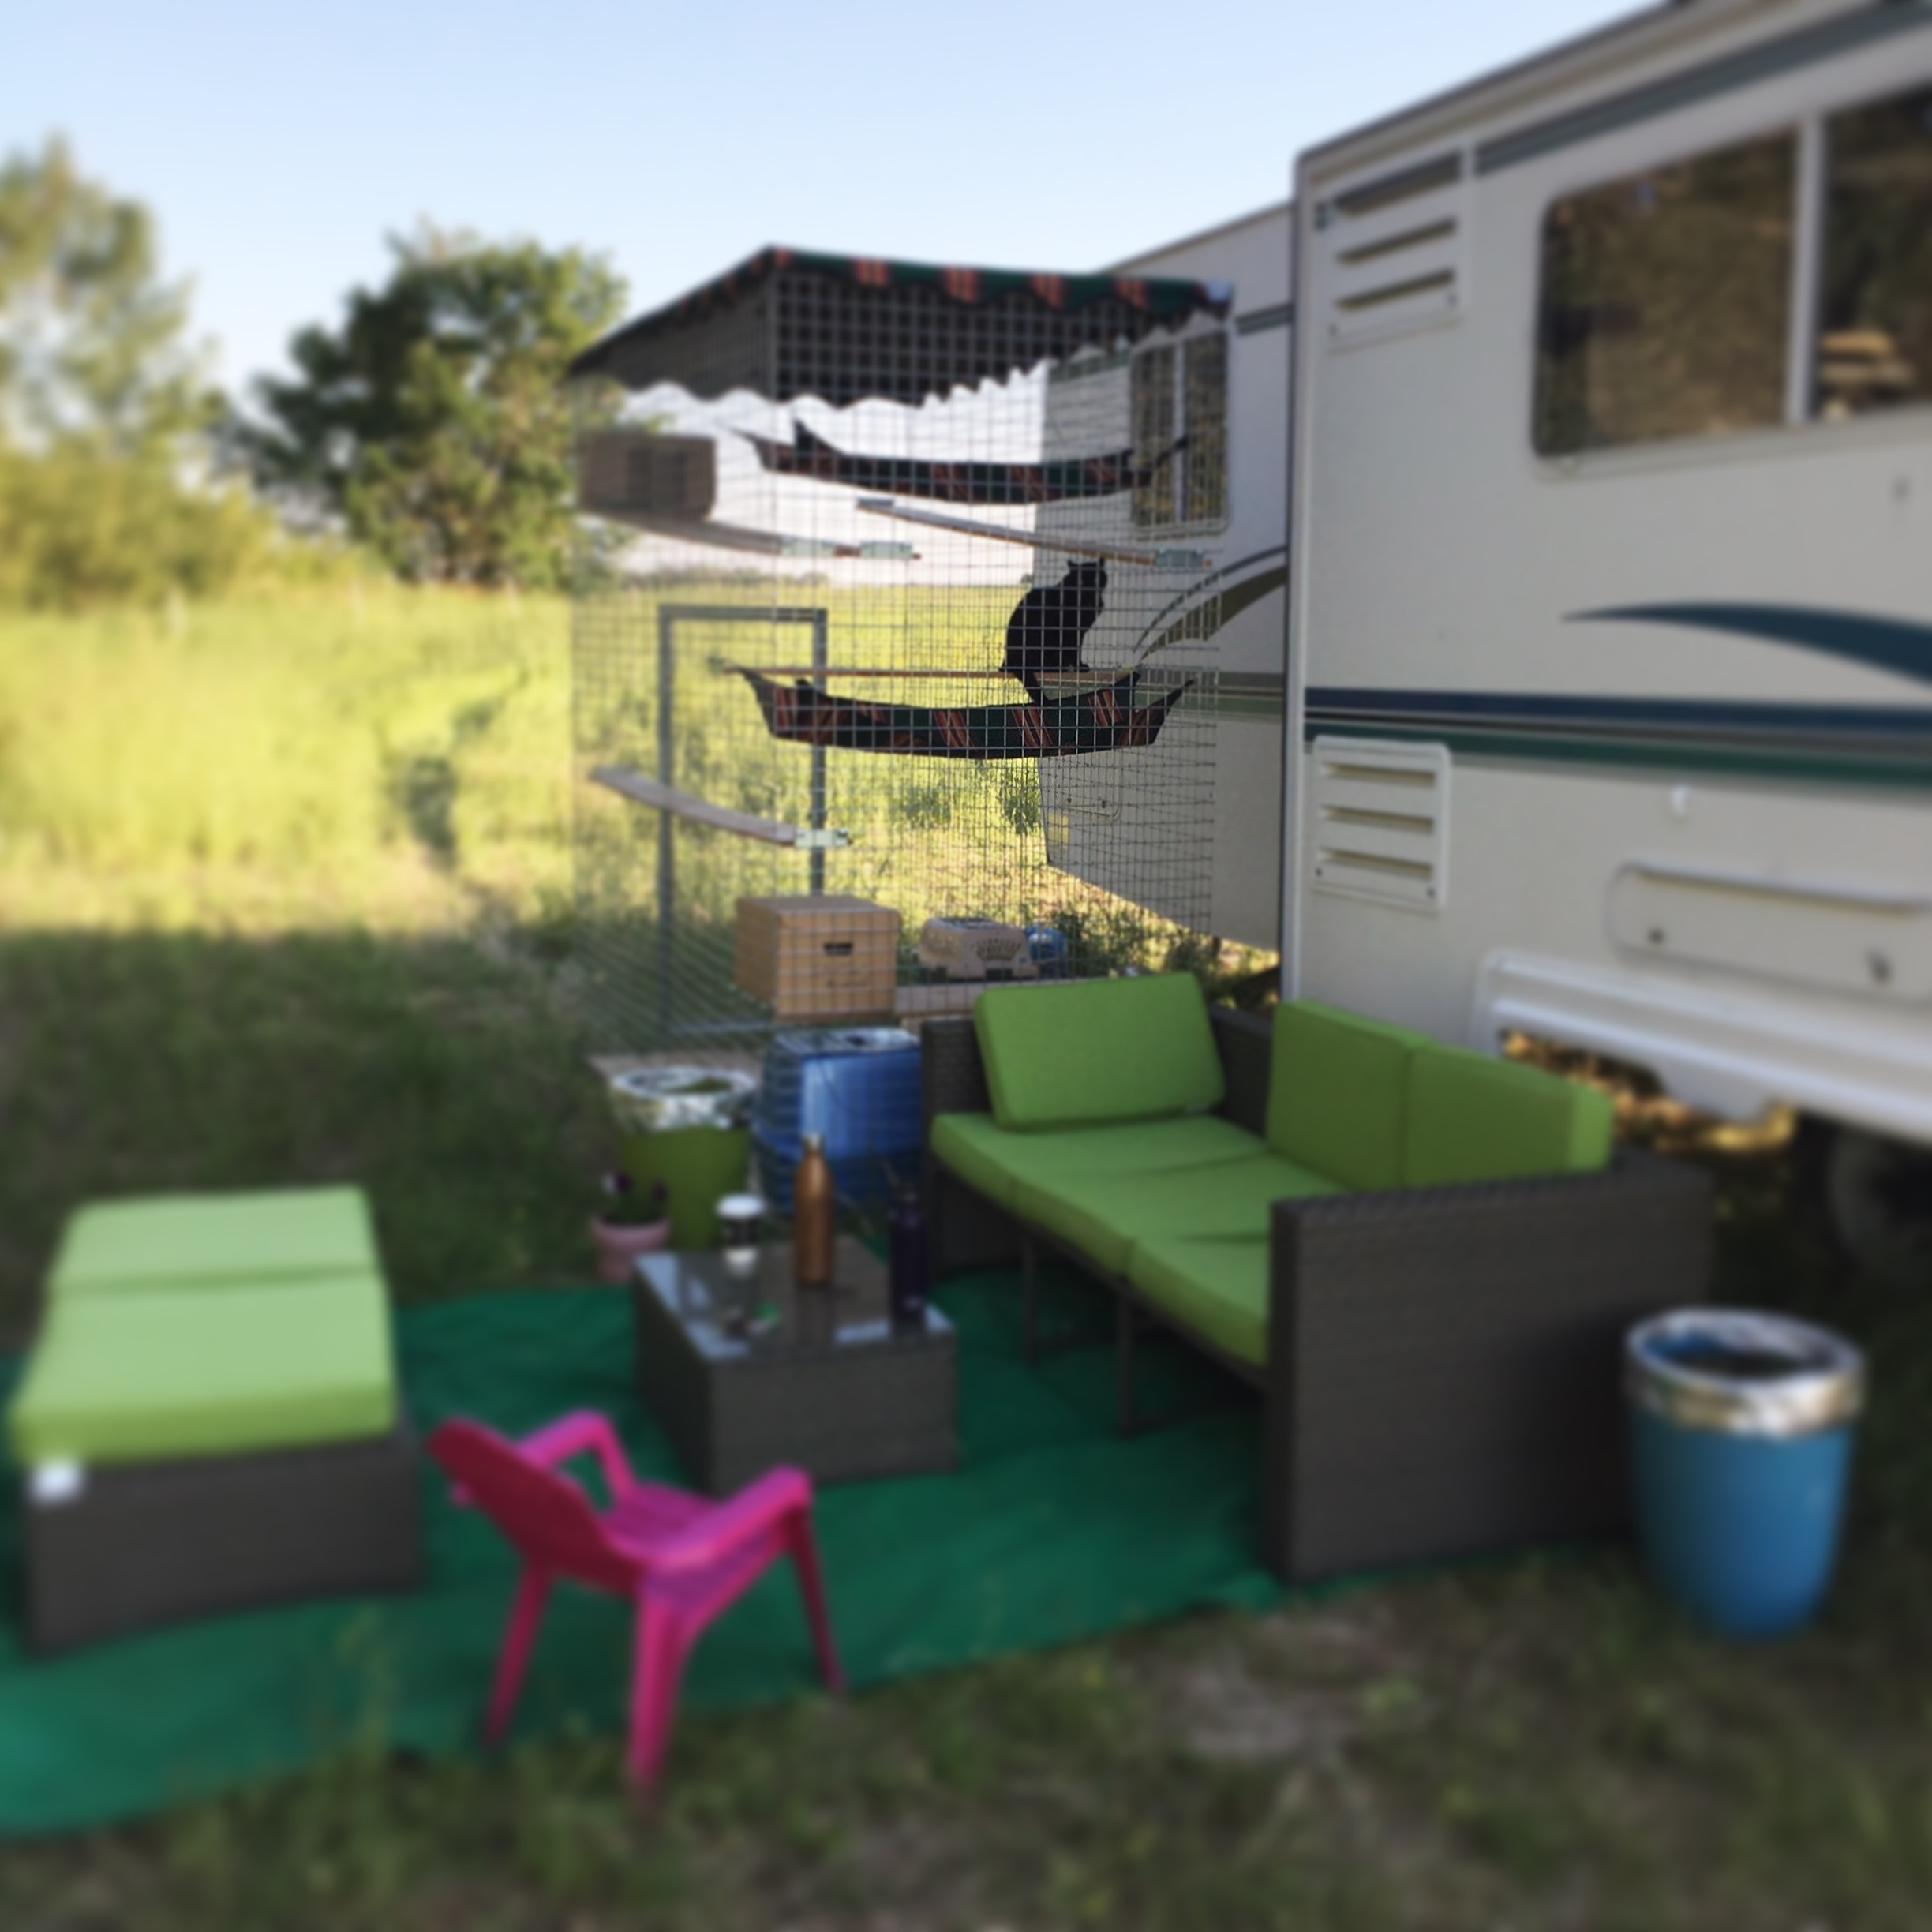 Farm Days: Life in a Trailer ~ The story of starting a small farm in Alberta